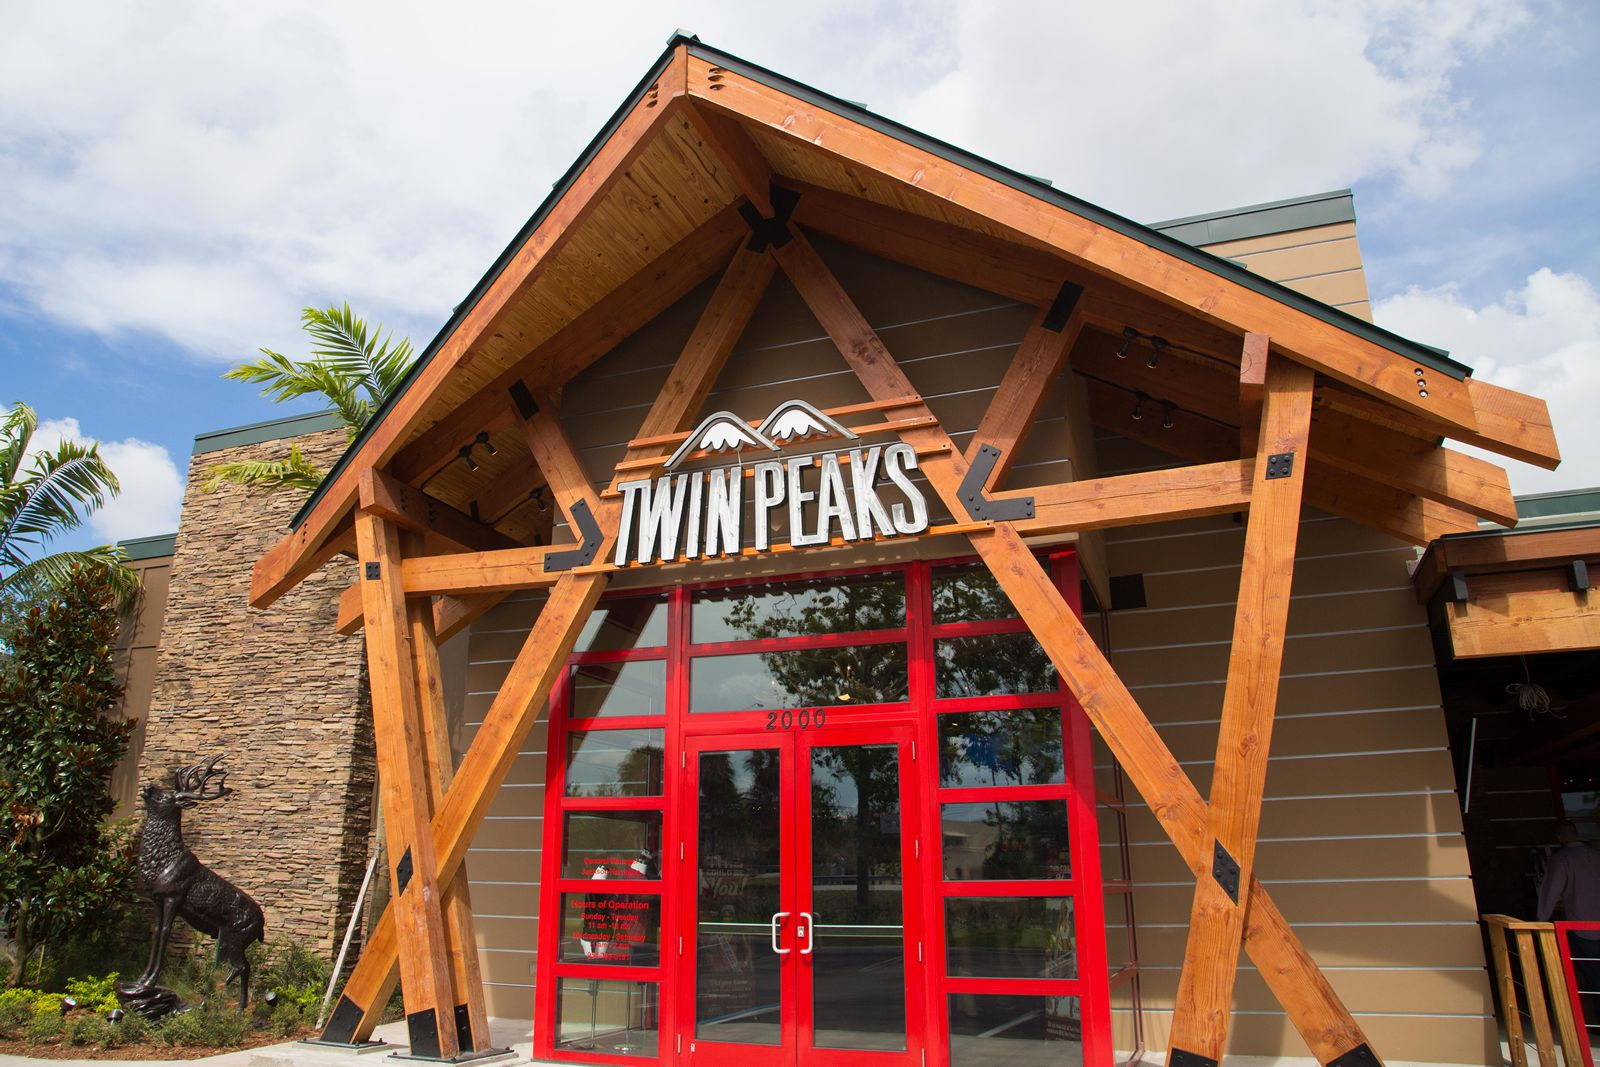 Twin Peaks to Bring Renowned Sports Viewing Experience to San Marcos